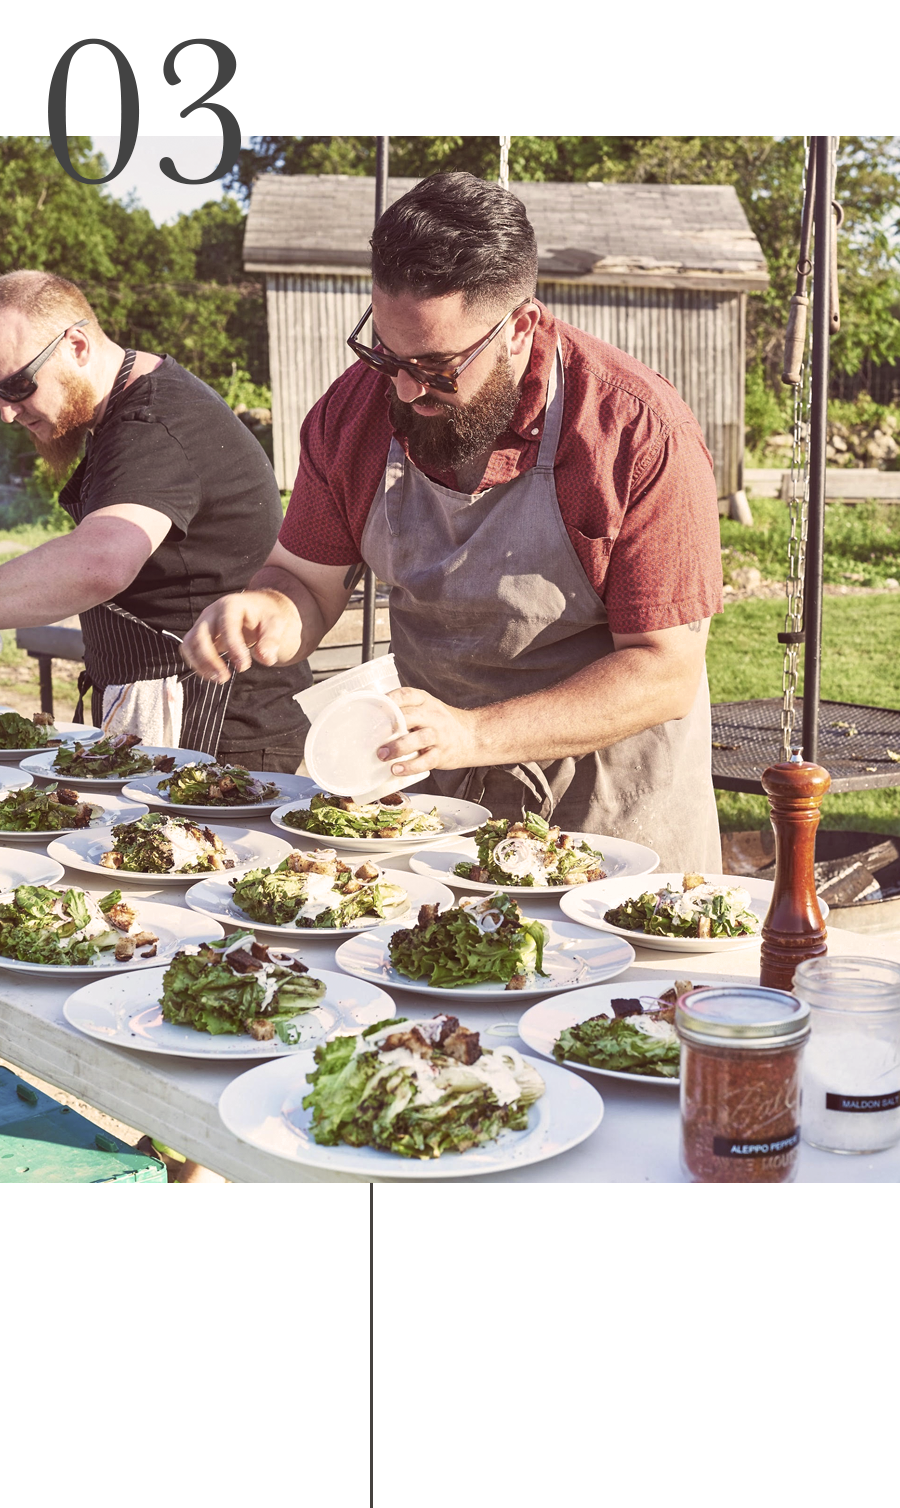 Wood Fire Food Farm to Table Drop Off Catering Great for Corporate Gatherings or Holidays Book Now Daniel Sabia